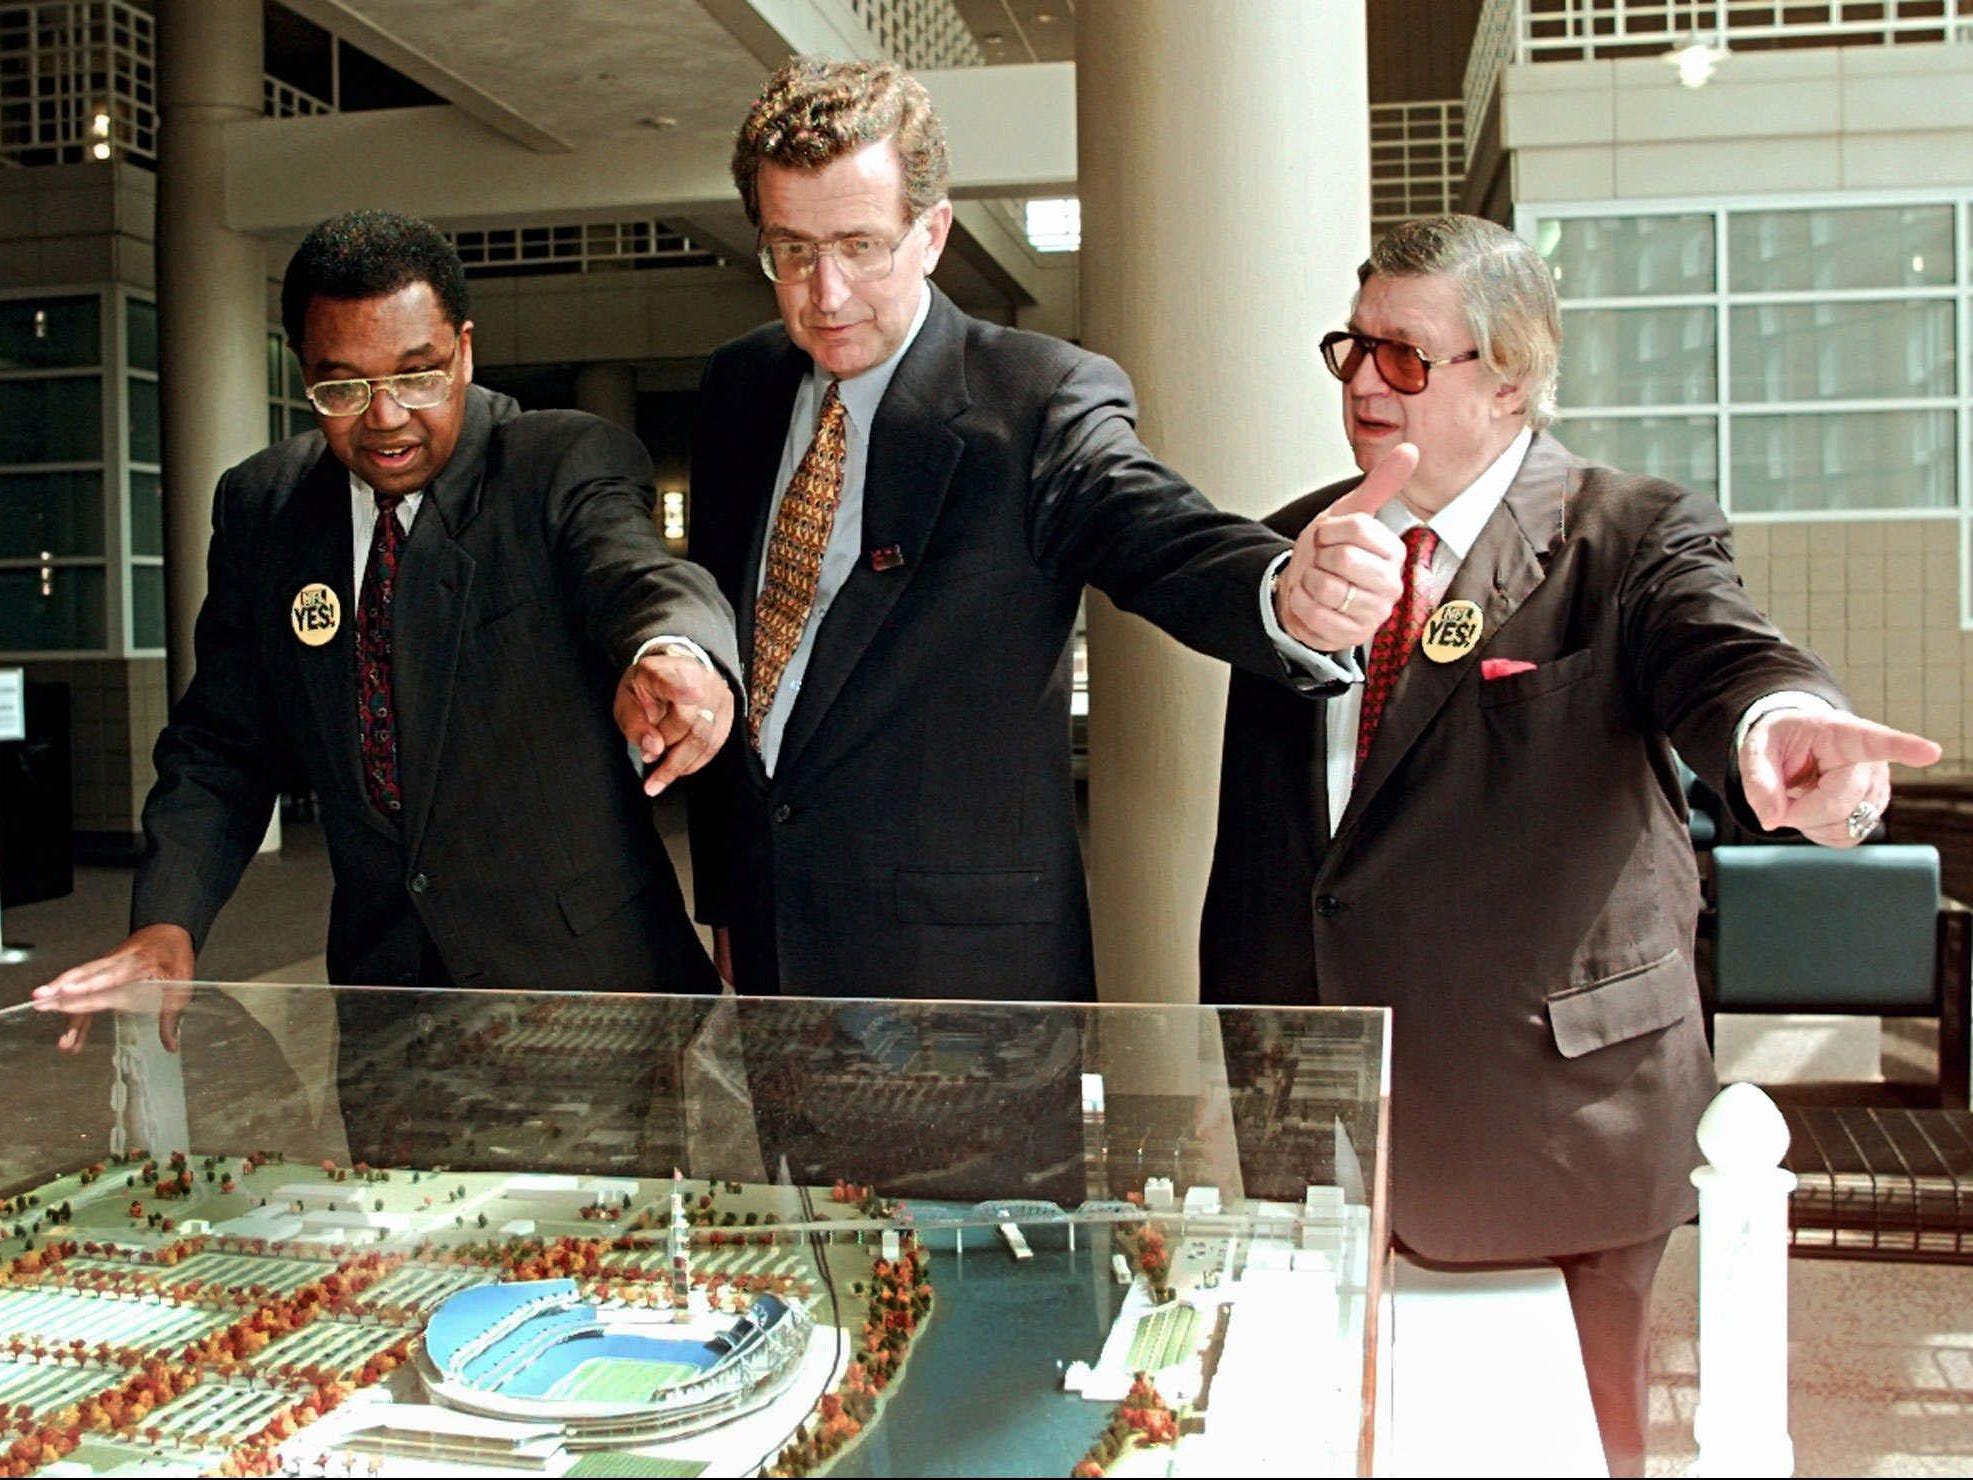 Tennessee State University President James A. Hefner, left, NFL Commissioner Paul Tagliabue and Houston Oilers owner Bud Adams, right, all point in the same direction when an onlooker asked where the Tennessee State campus is from the proposed NFL stadium as they look over a model of the stadium May 6, 1996. Tagliabue and Adams are visiting the Nashville campus as one of several stops on the day before voters decide whether to spend public money on the 65,000-seat stadium.